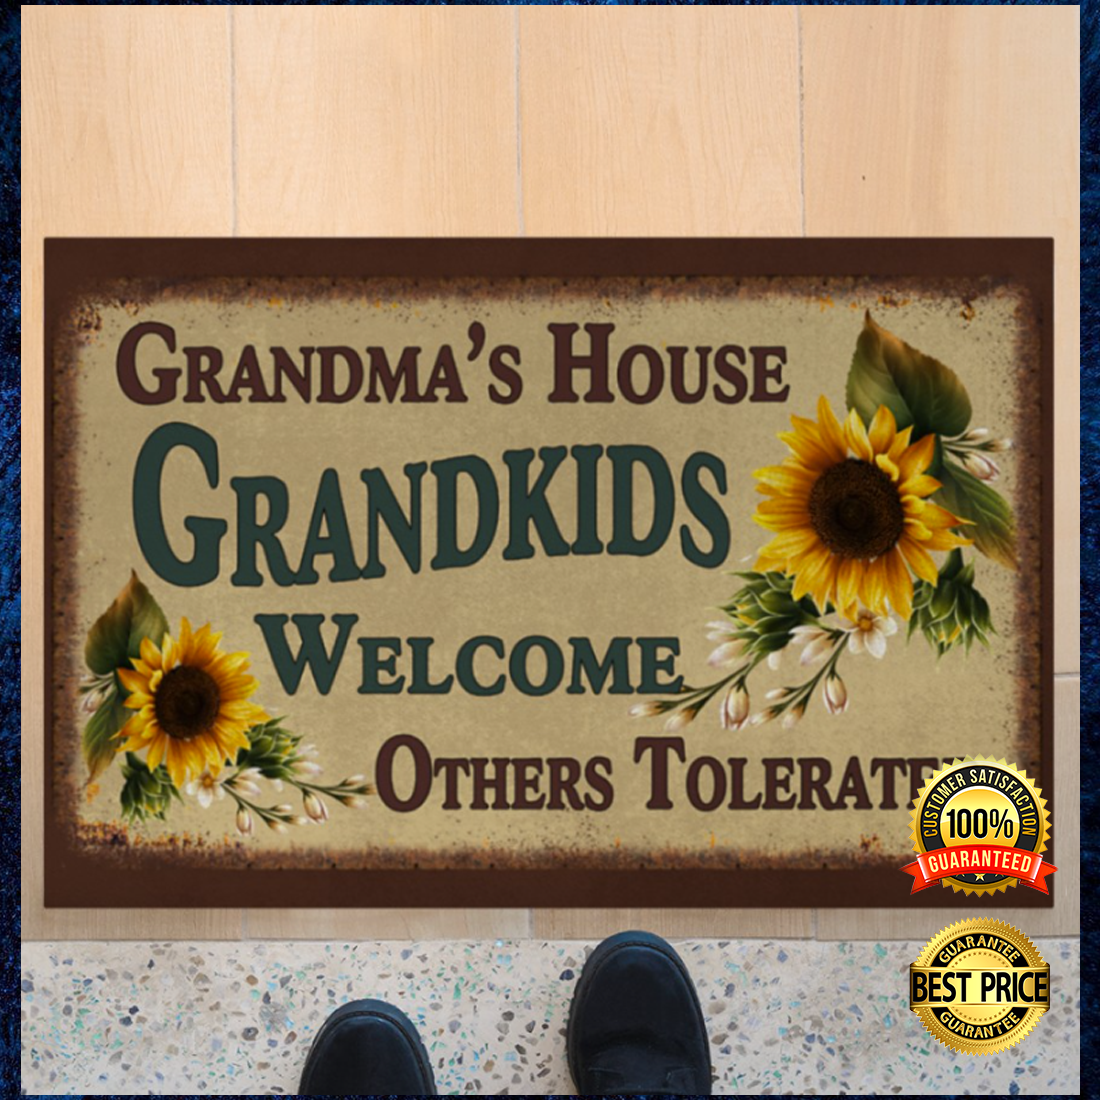 Grandma's house grandkids welcome others tolerated doormat 7